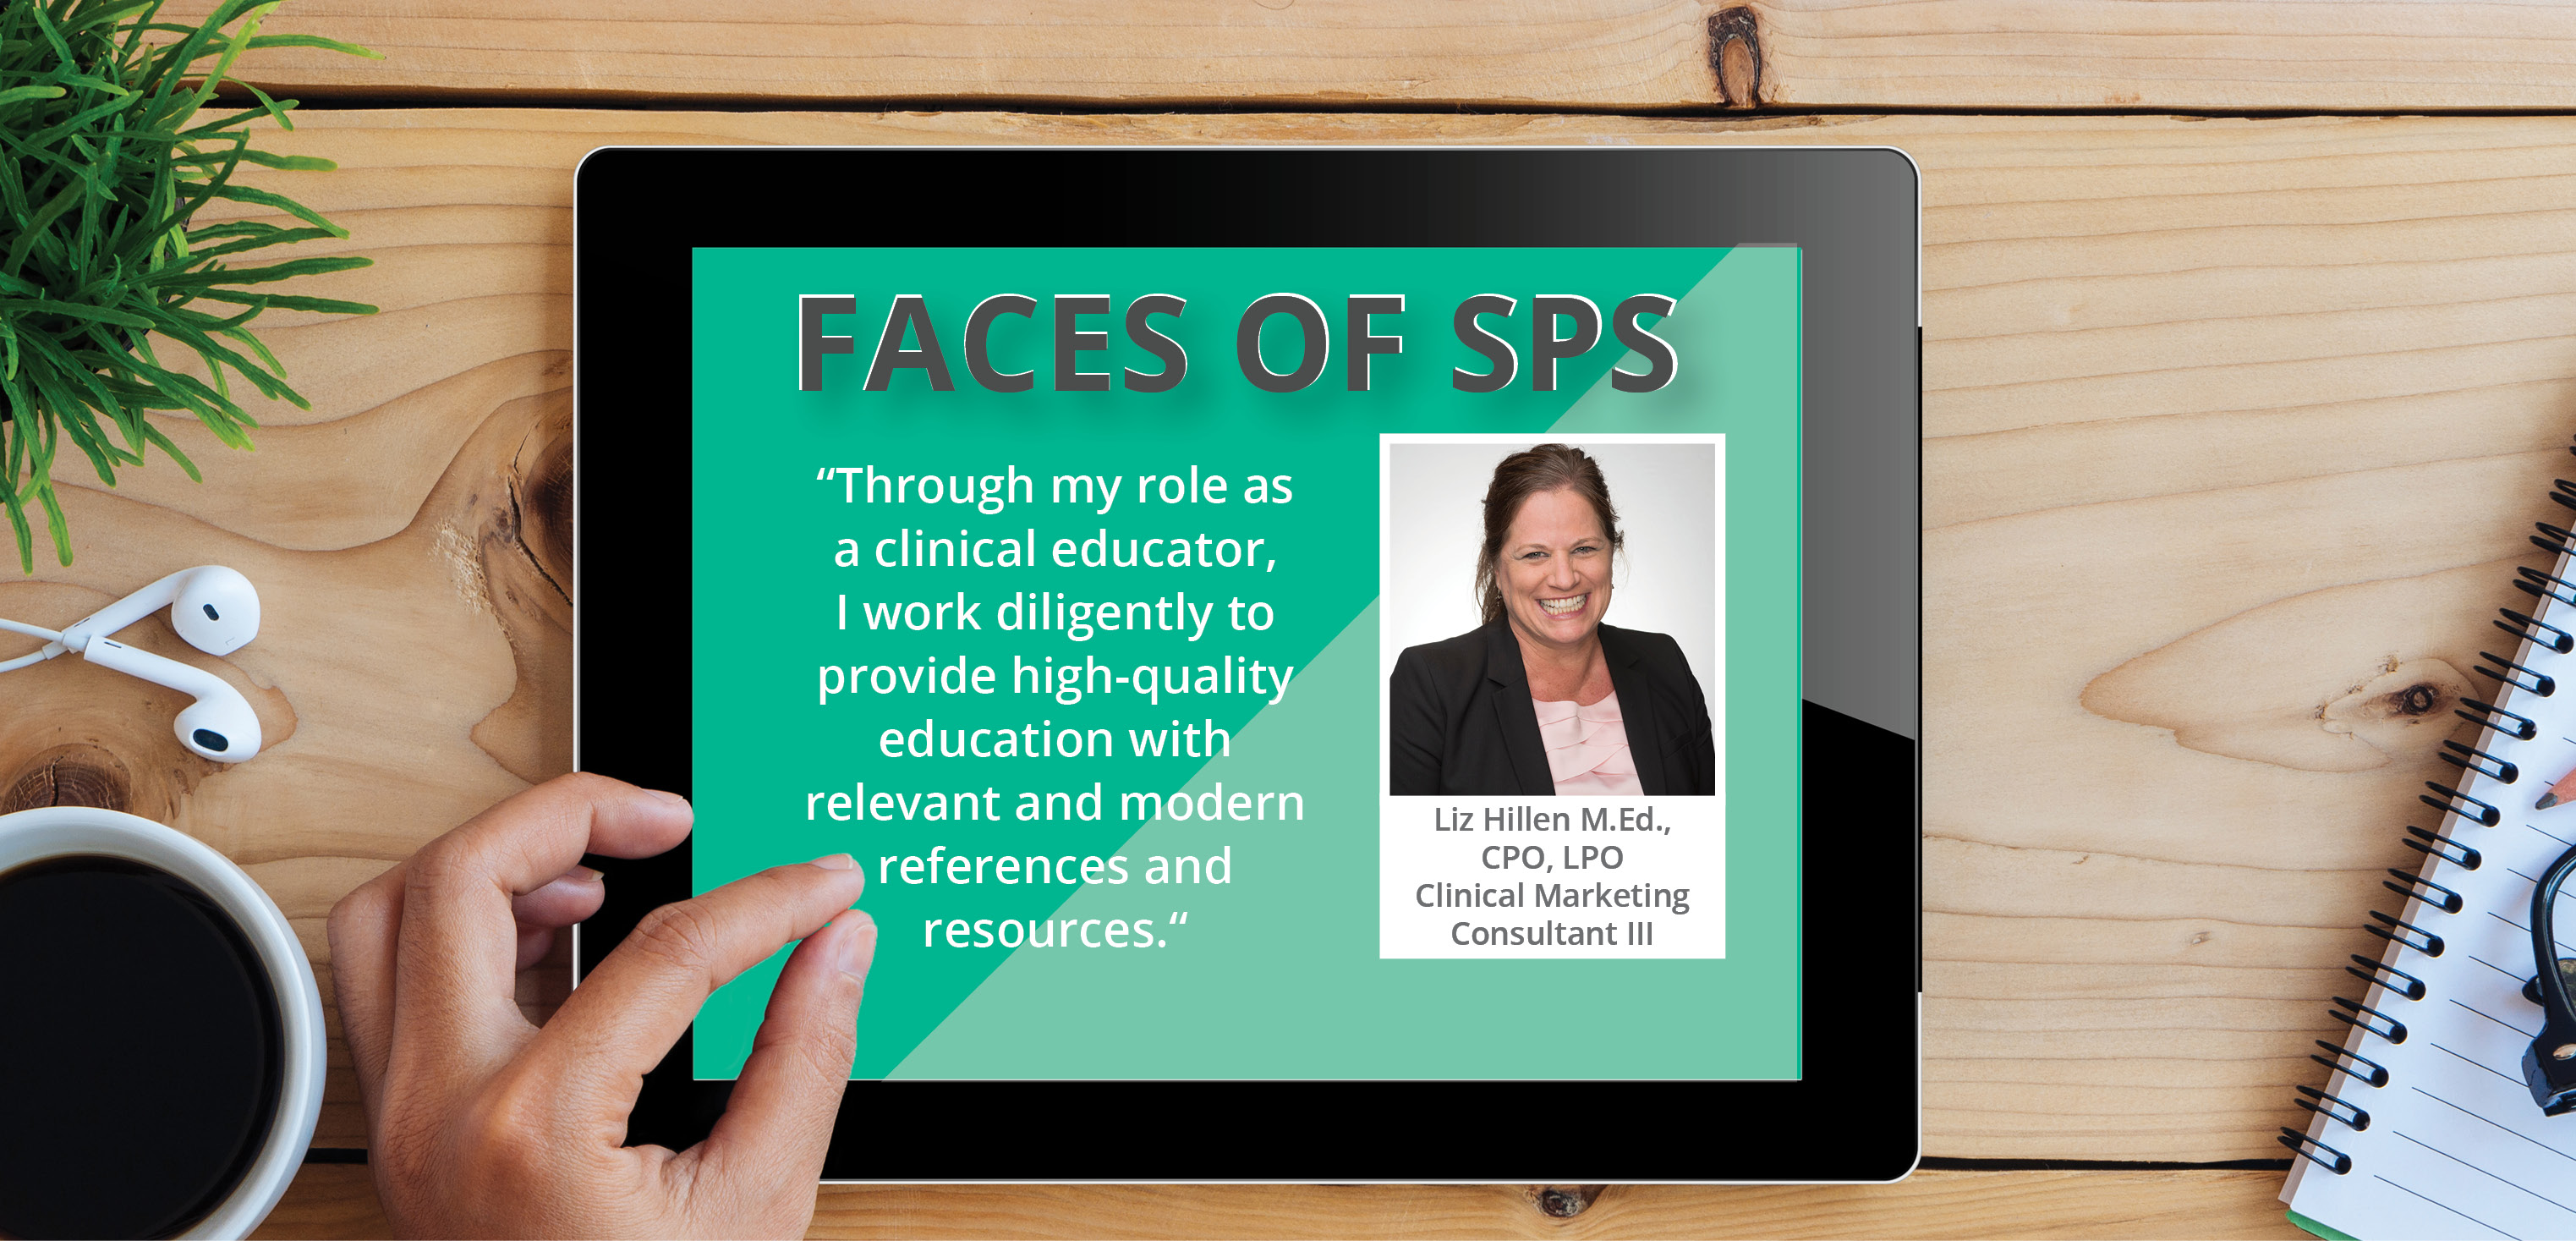 Faces of sps blog2